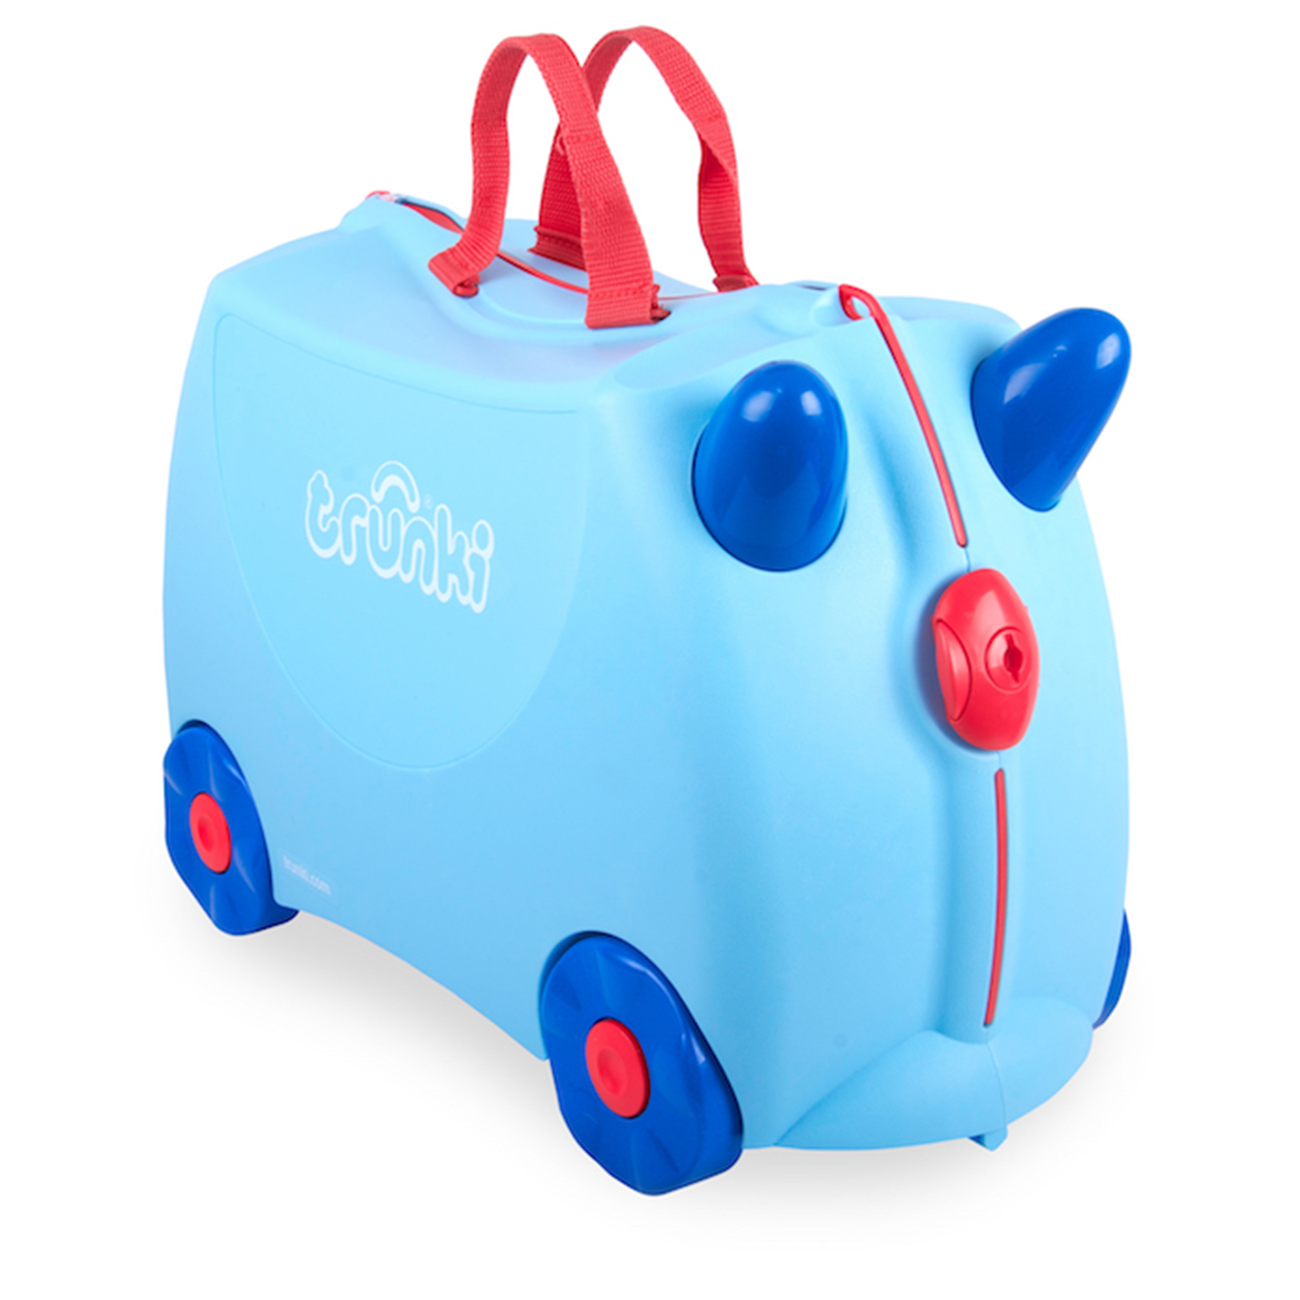 trunki-george-blue-lightblue-blaa-rejsekuffert-kuffert-suitcase-rejse-travel-1